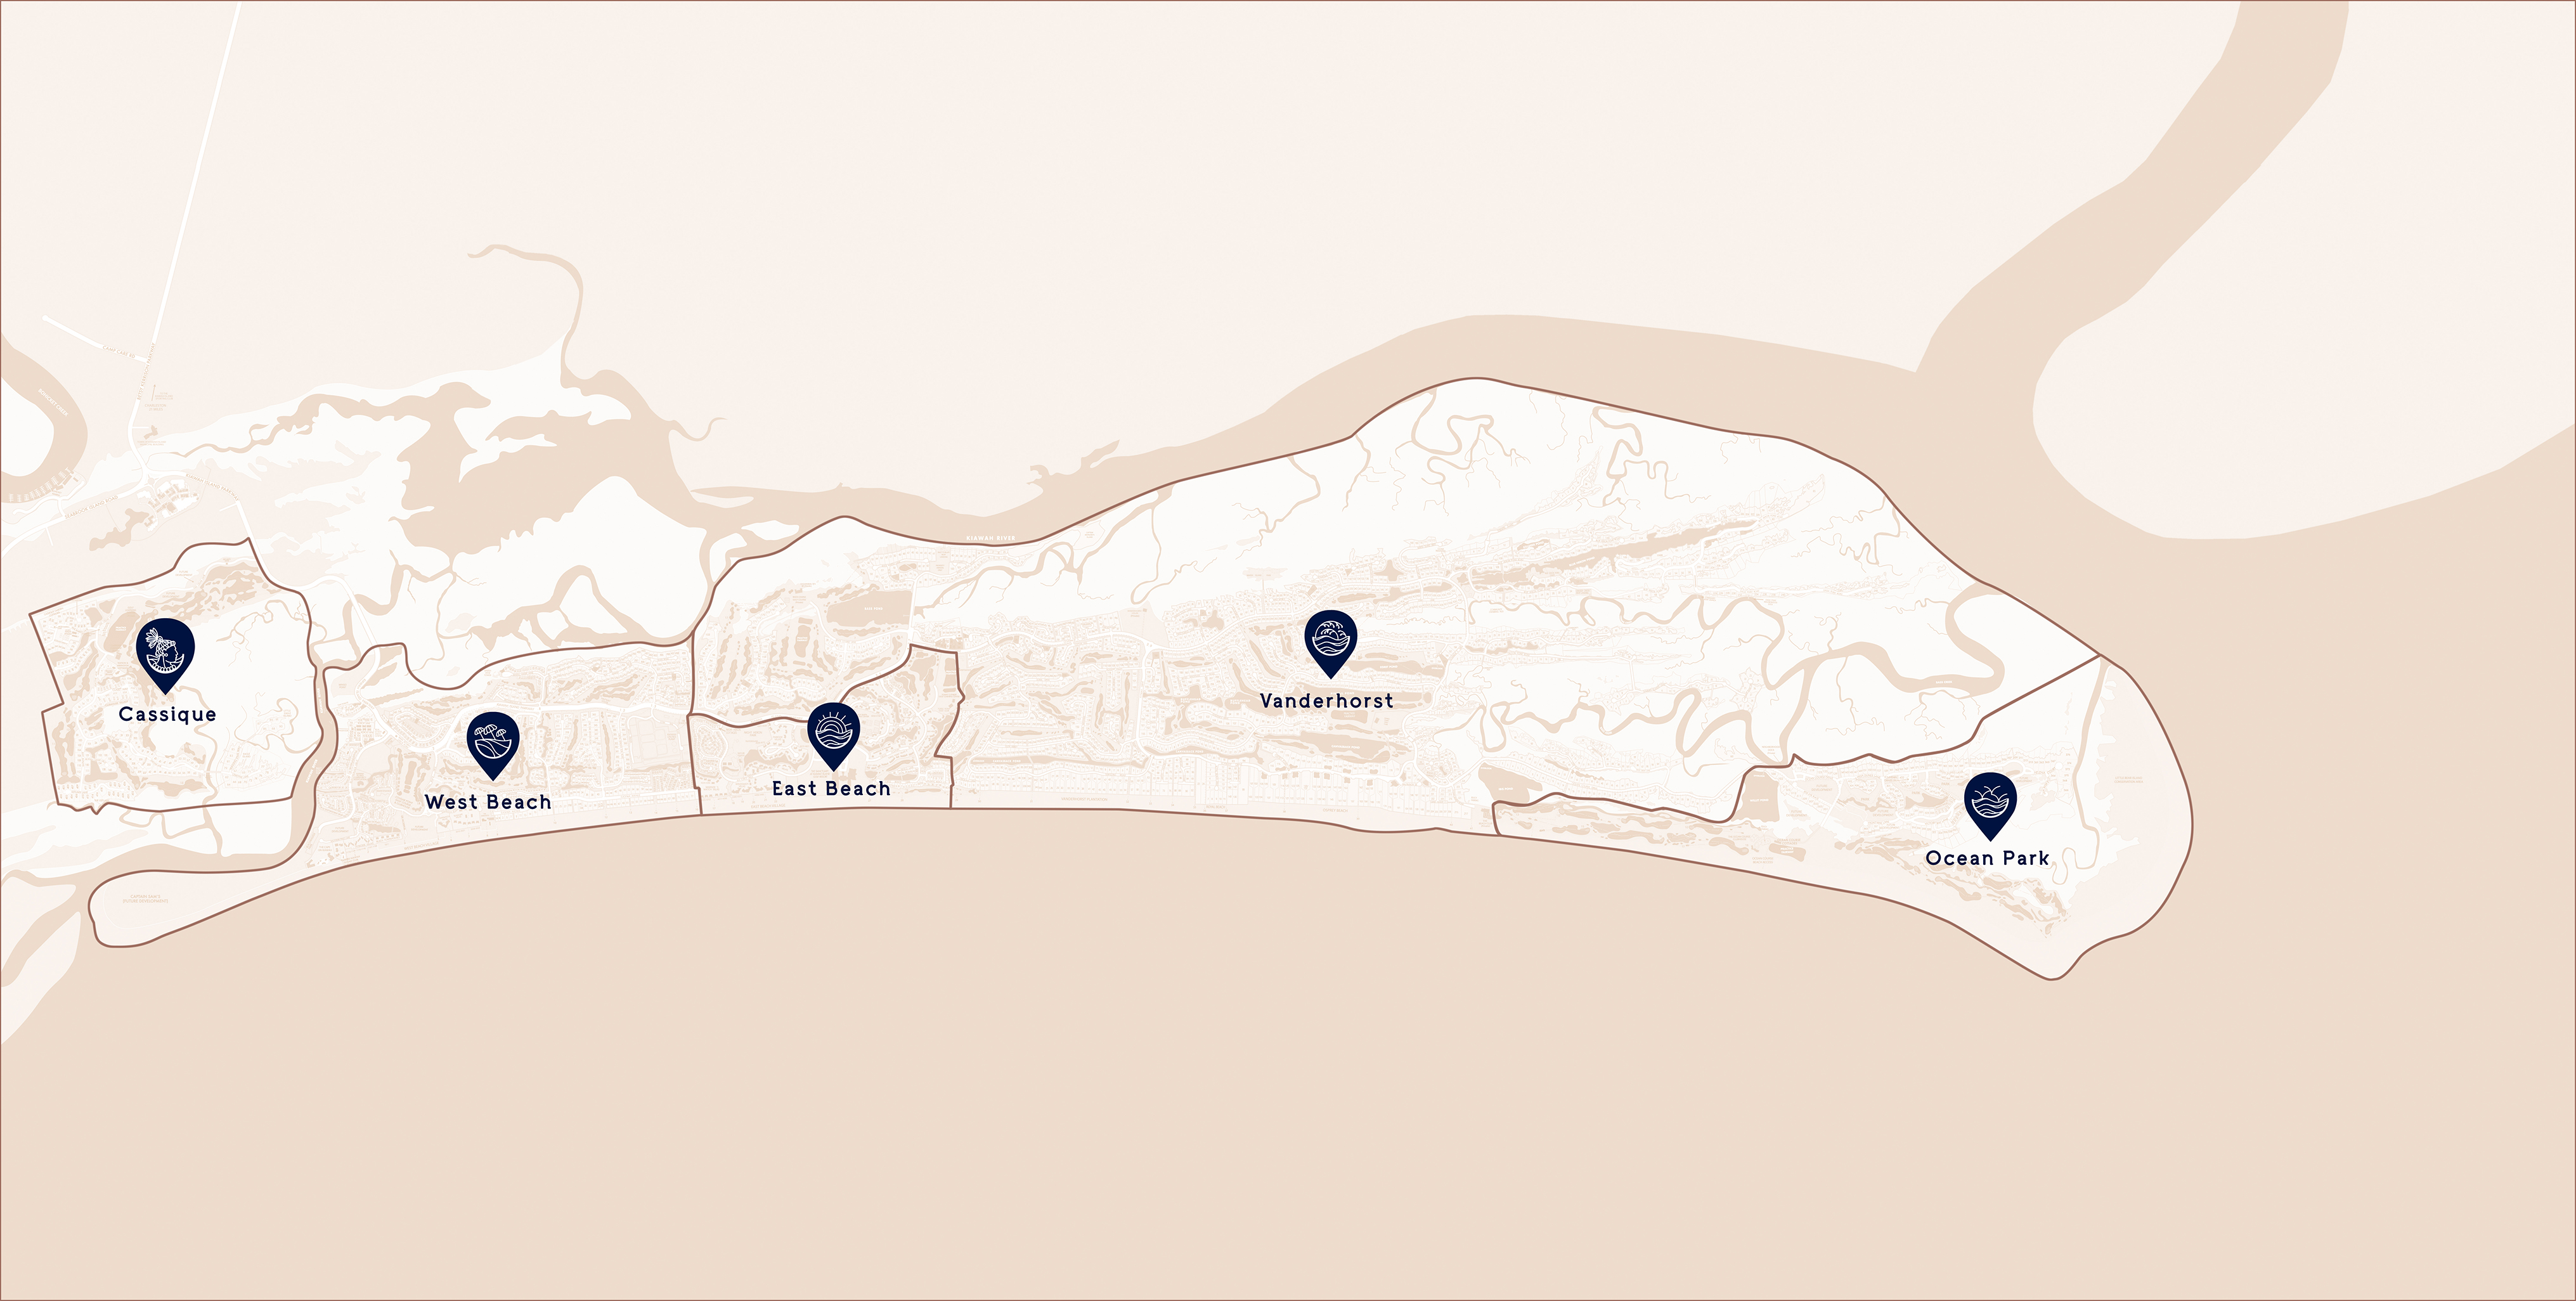 Click on the map to explore the island.